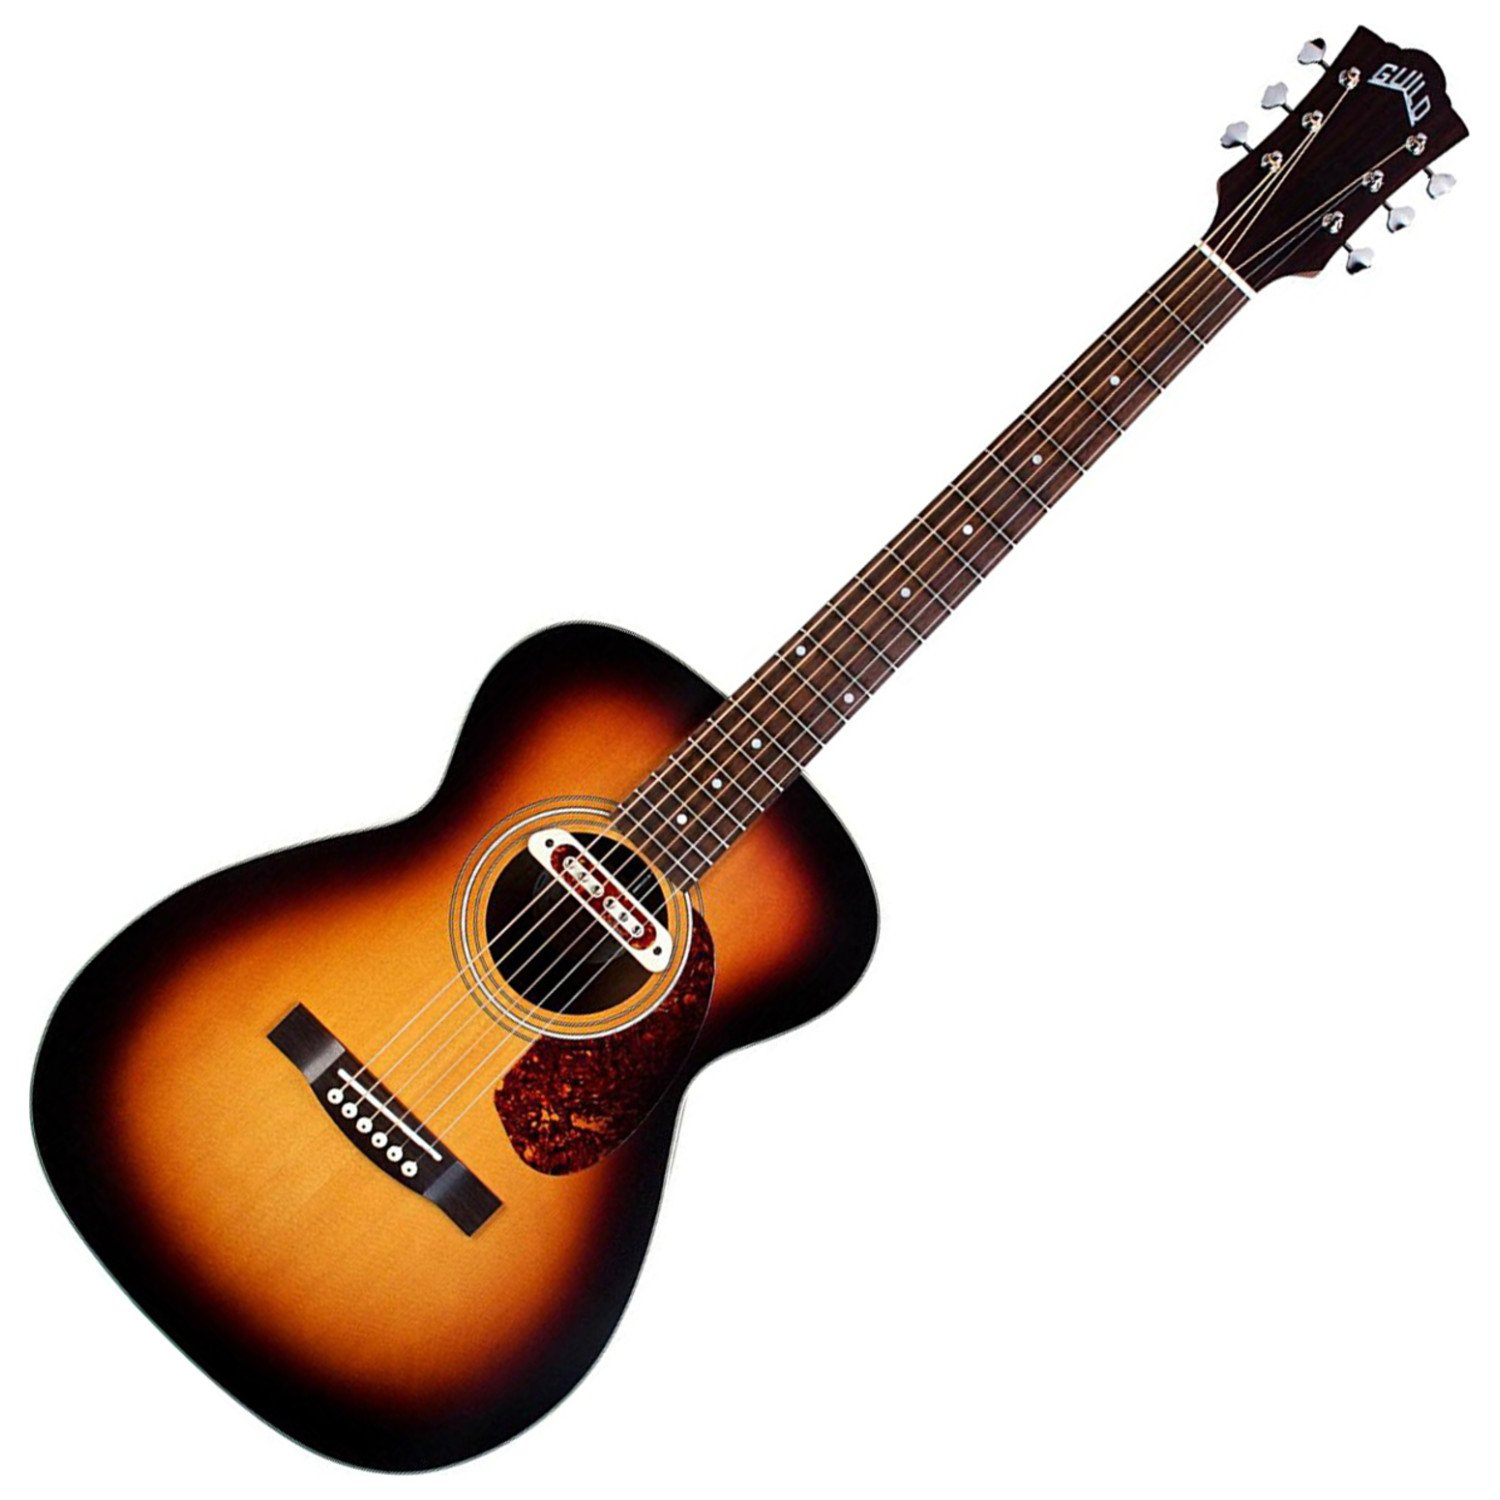 Guild Guitars 6 String Guild M-240E Troubadour Acoustic Electric Guitar with Bag (Vintage Sunburst) (VSB W/B by Guild Guitars